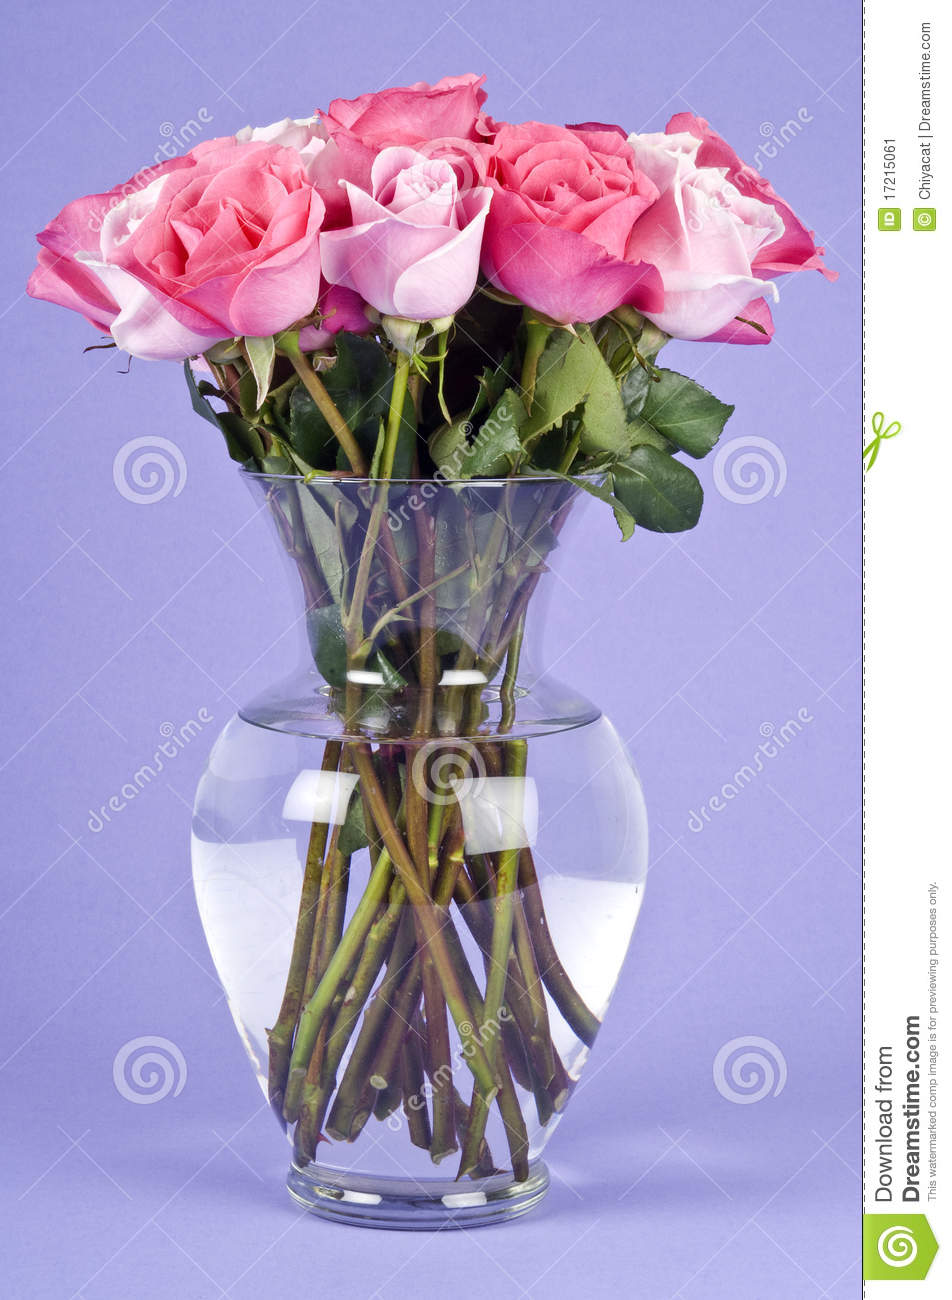 Bouquet Of Pink Roses In A Glass Vase Stock Image - Image ...